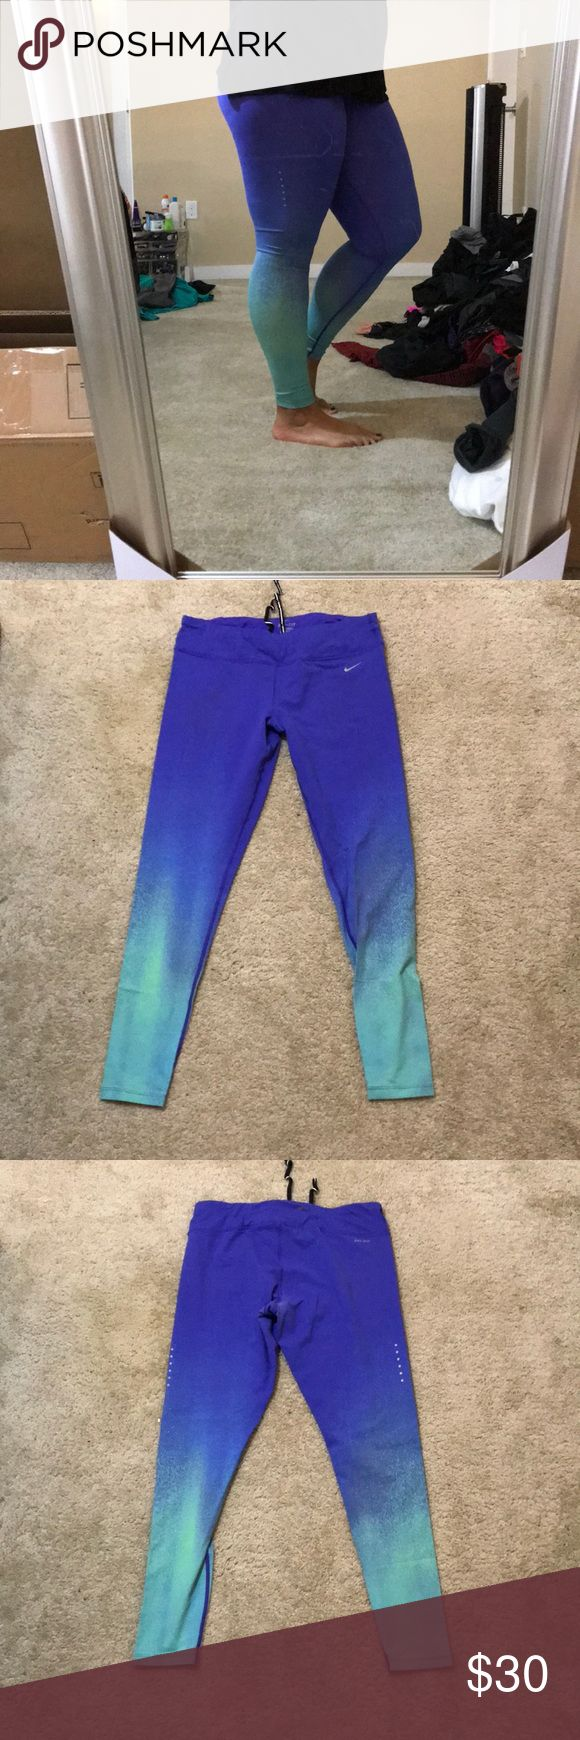 Nike epic run tights Fun colored print nike epic run tights. Super comfortable for working out or lounging. In great condition. Some of the color may be wearing off on the inner thighs but it's not at all noticeable when worn. Nike Pants